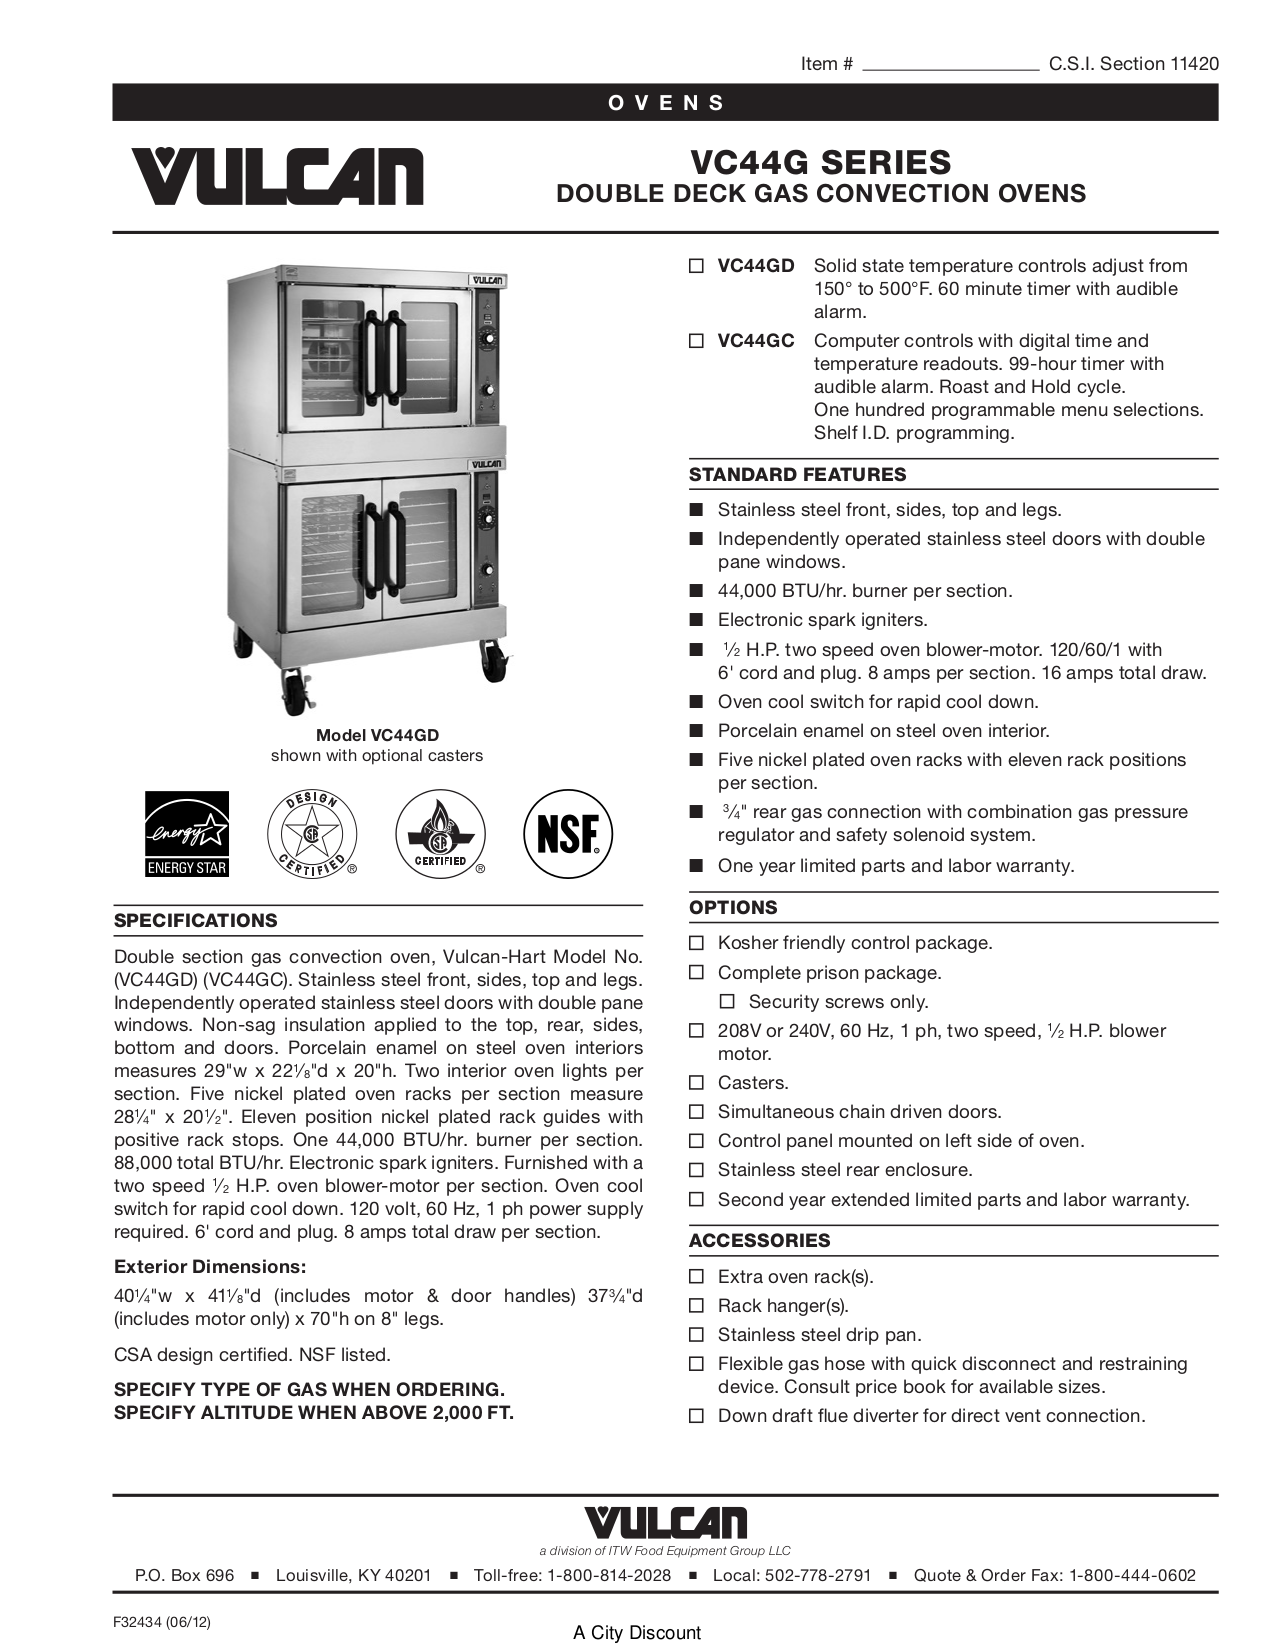 pdf for Vulcan Oven VC44GC manual